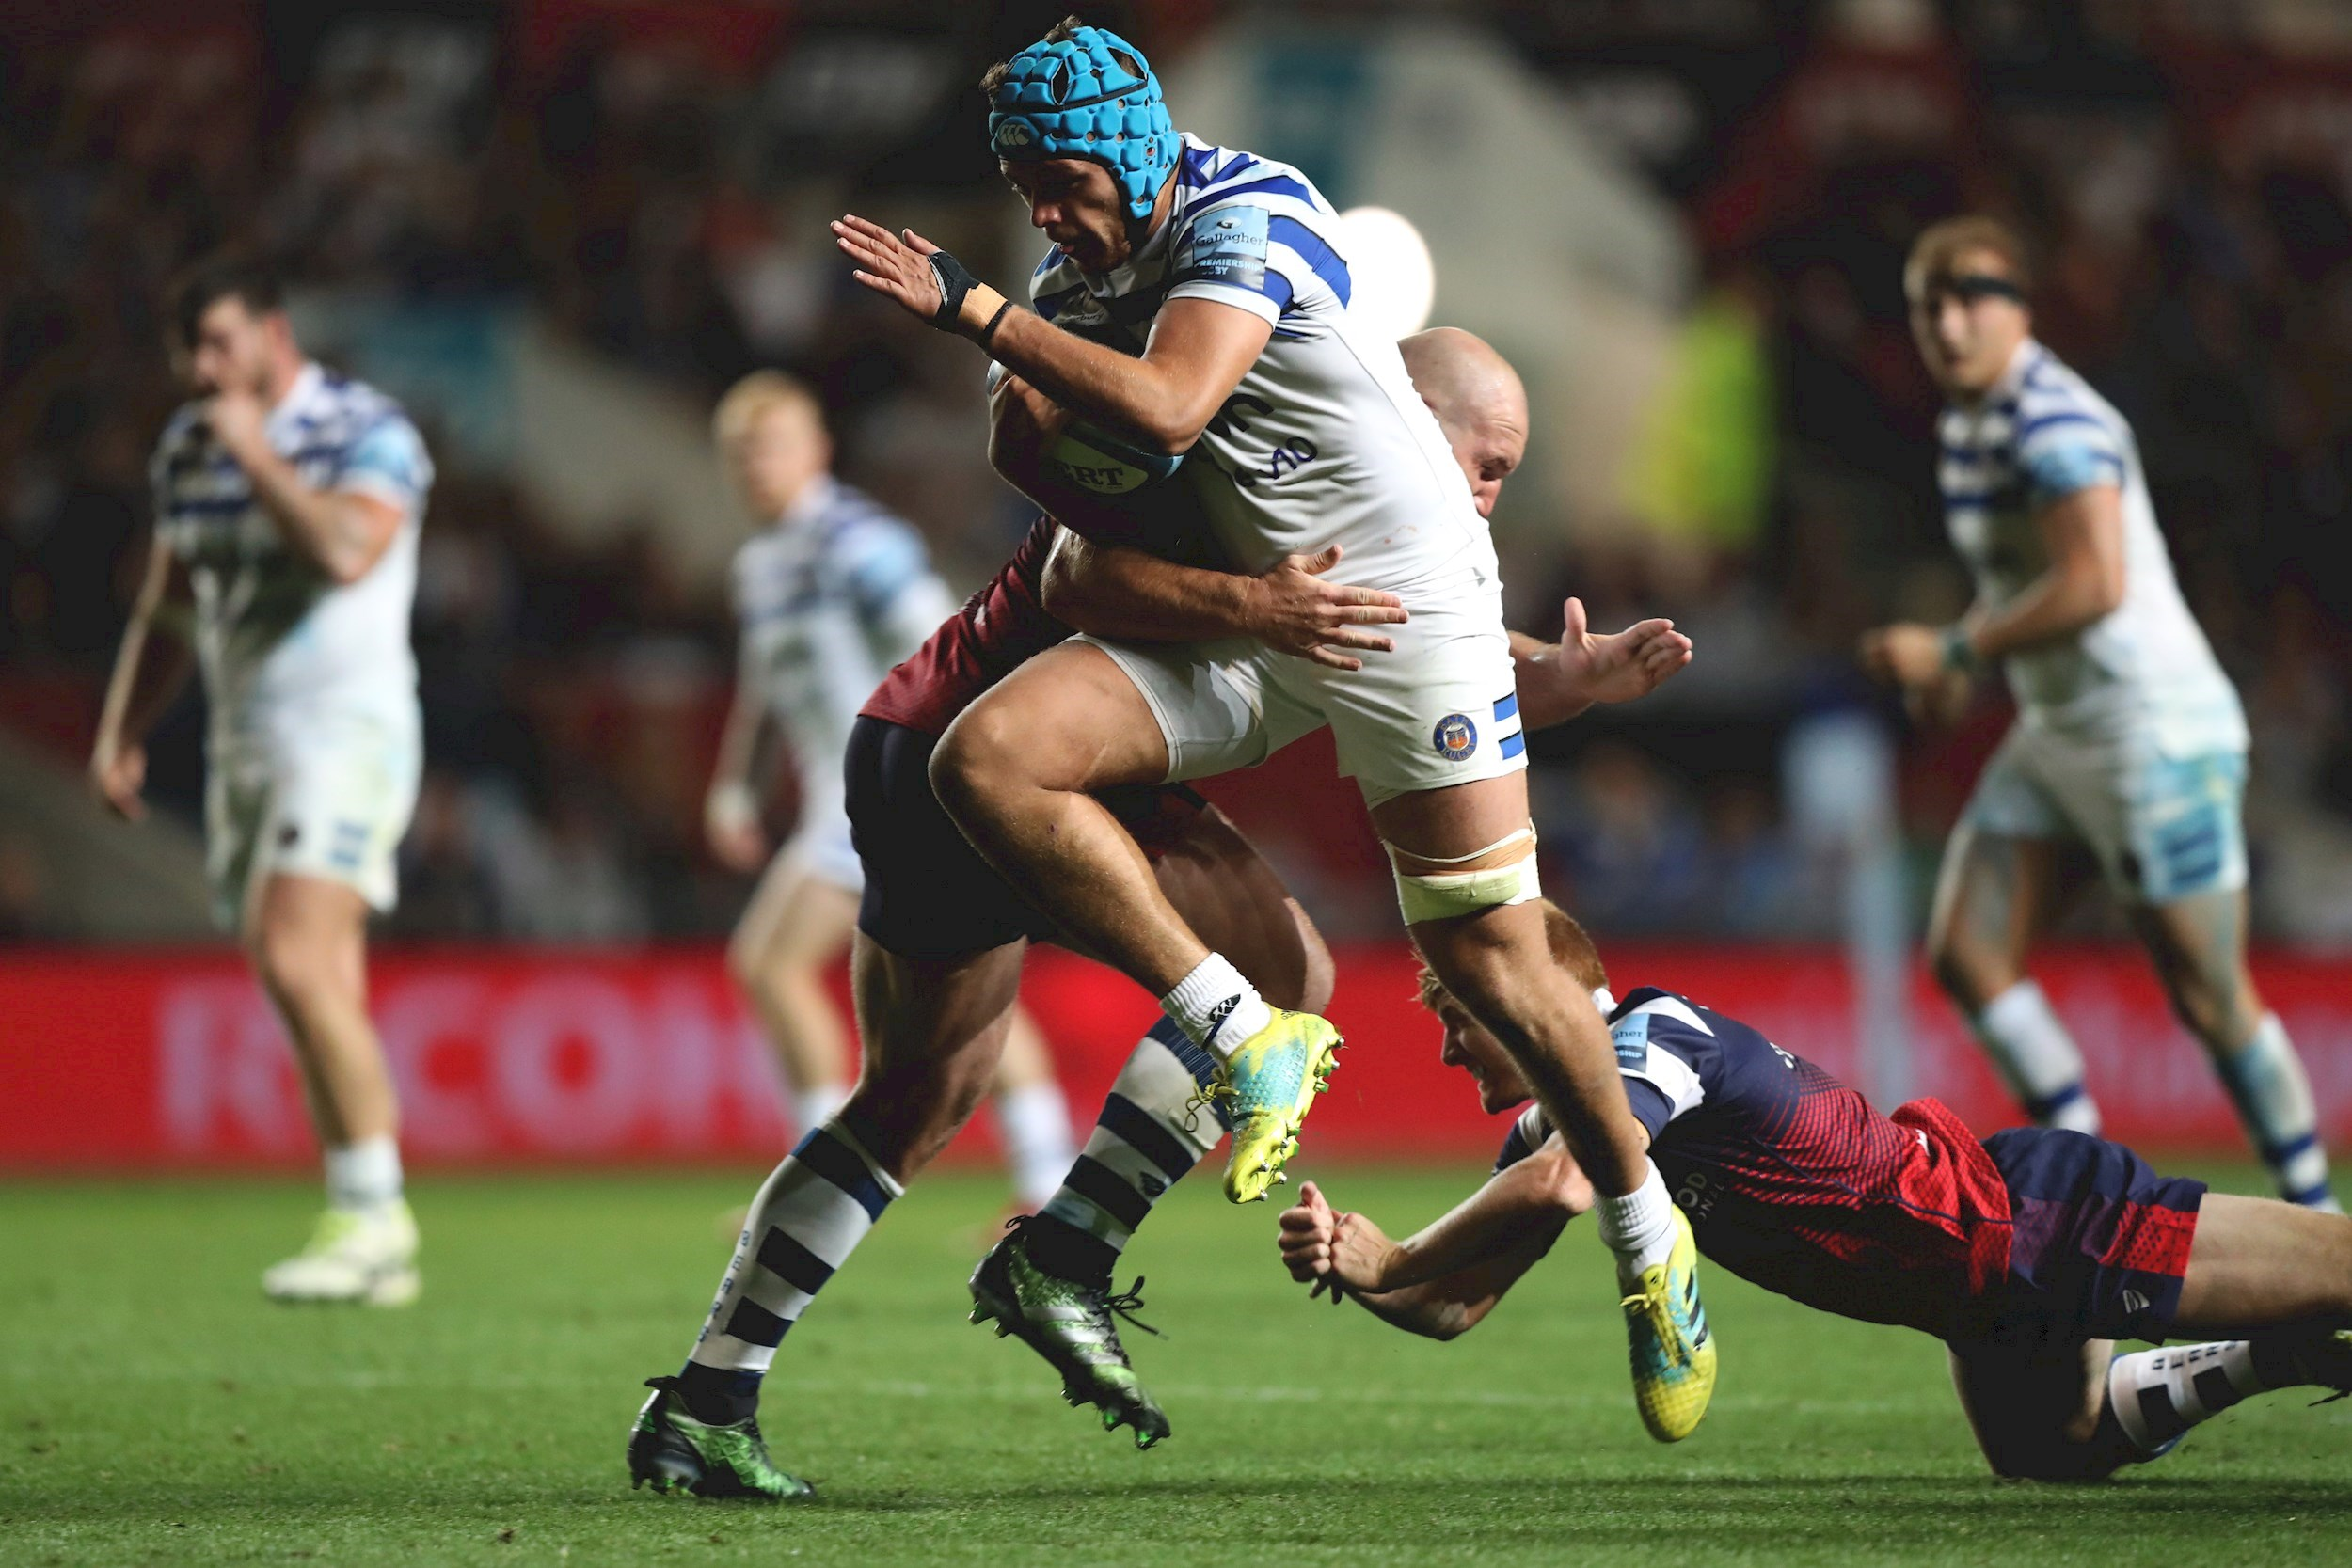 Bristol Bears secure derby victory over Bath Rugby